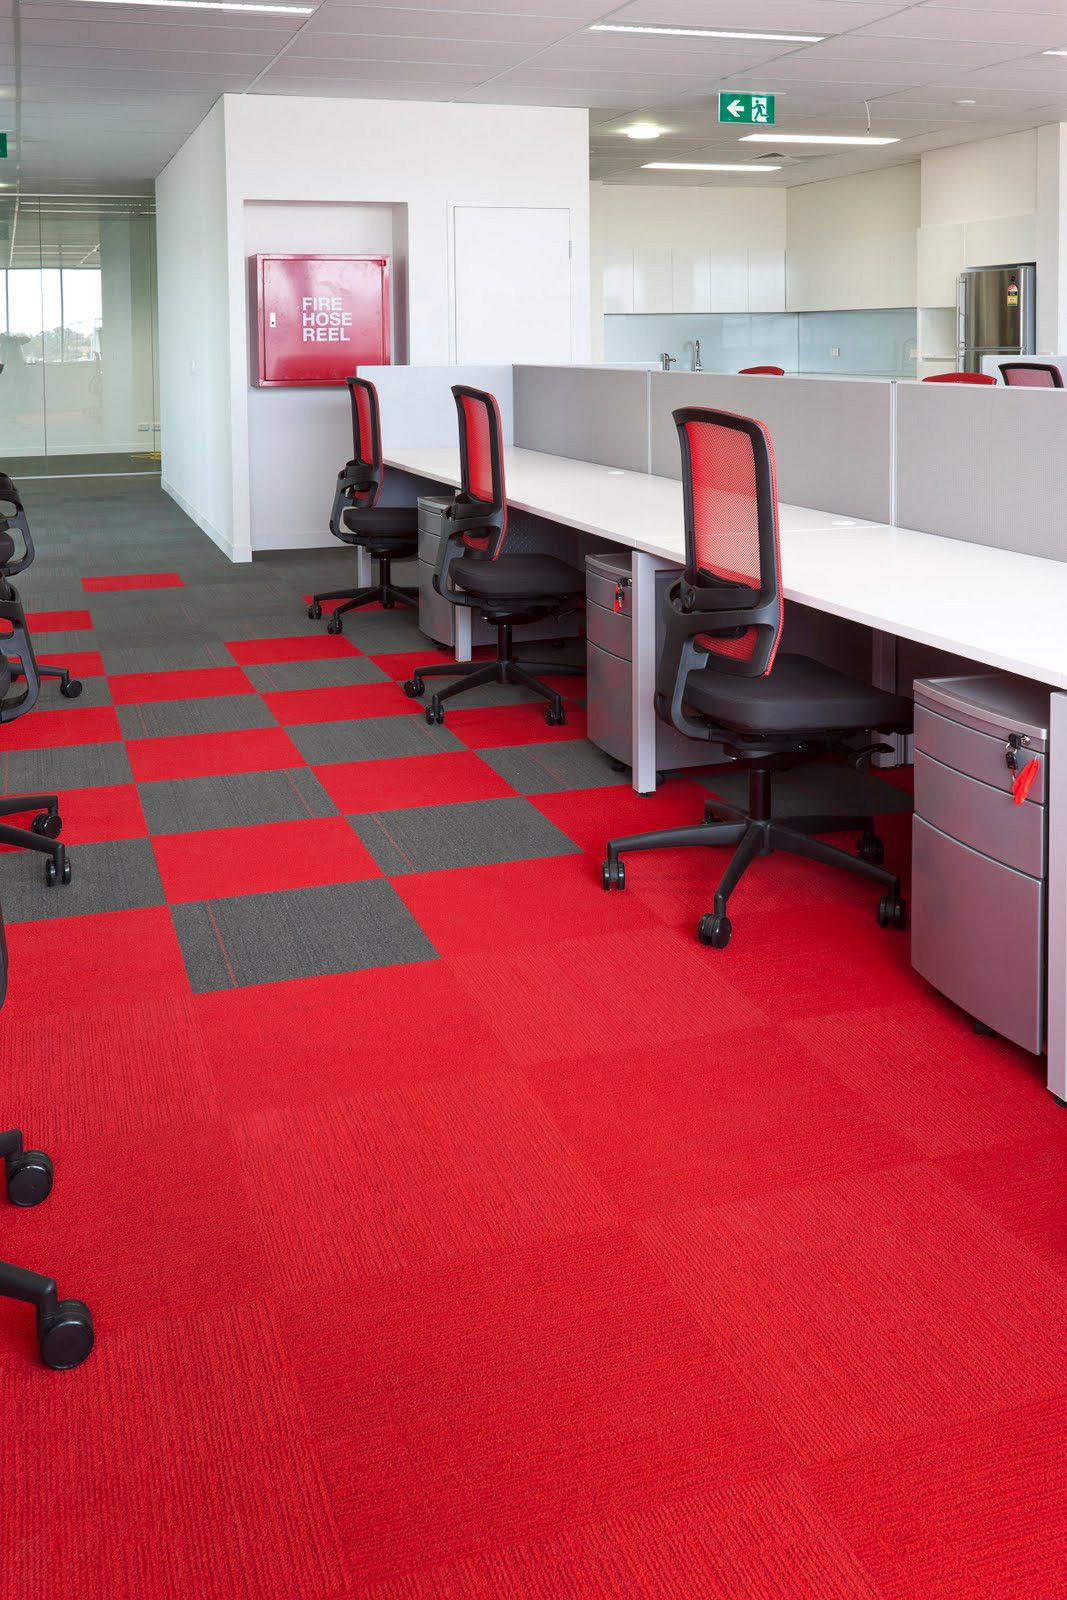 Carpet Tile Design Ideas floor carpet tiles home design ideas youtube Carpet Tiles Office Installation Google Search